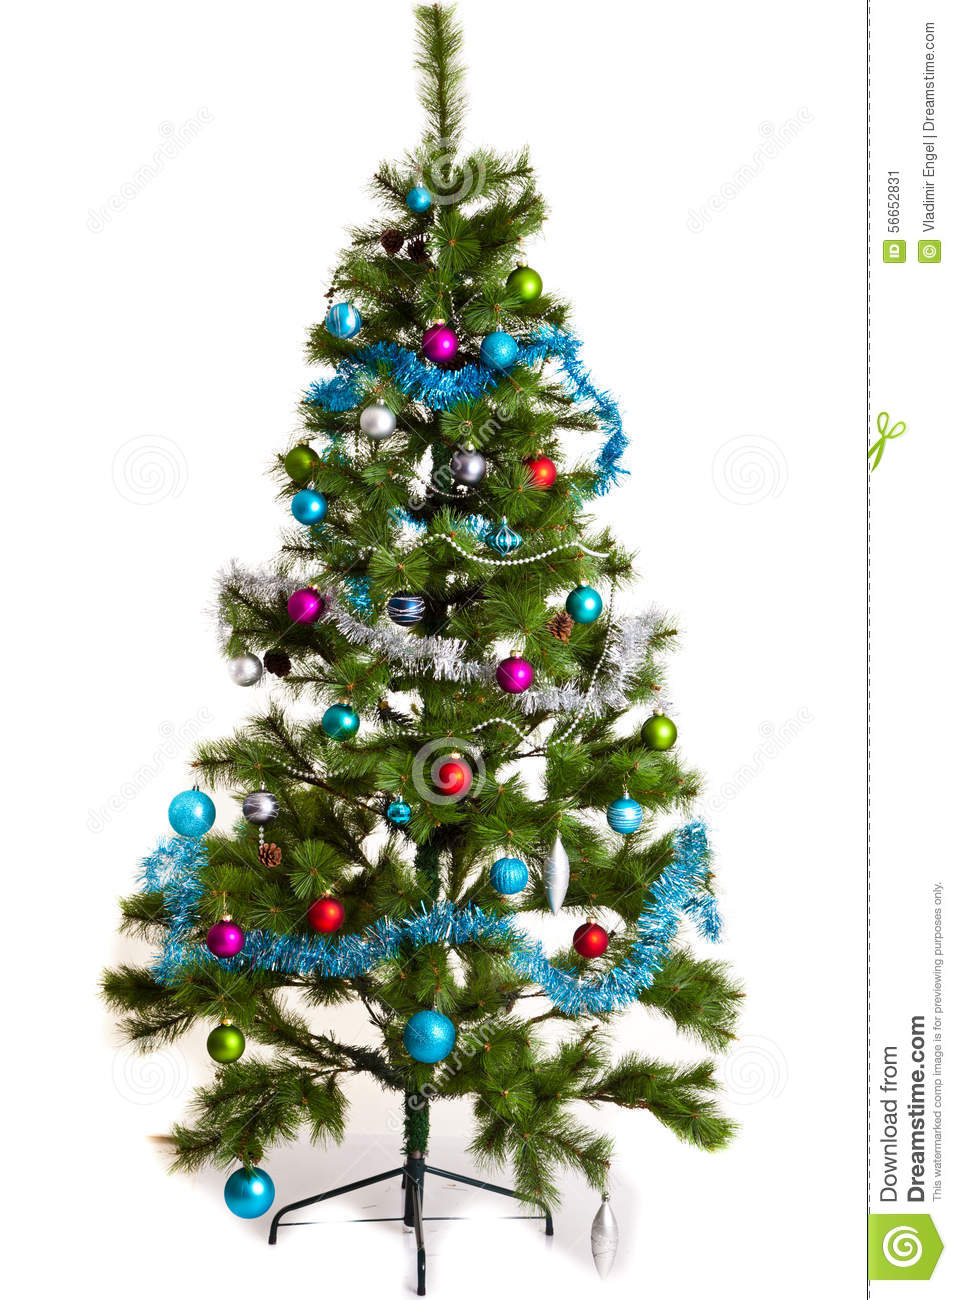 Christmas tree decorations 2016 new year stock image for Christmas decorations 2016